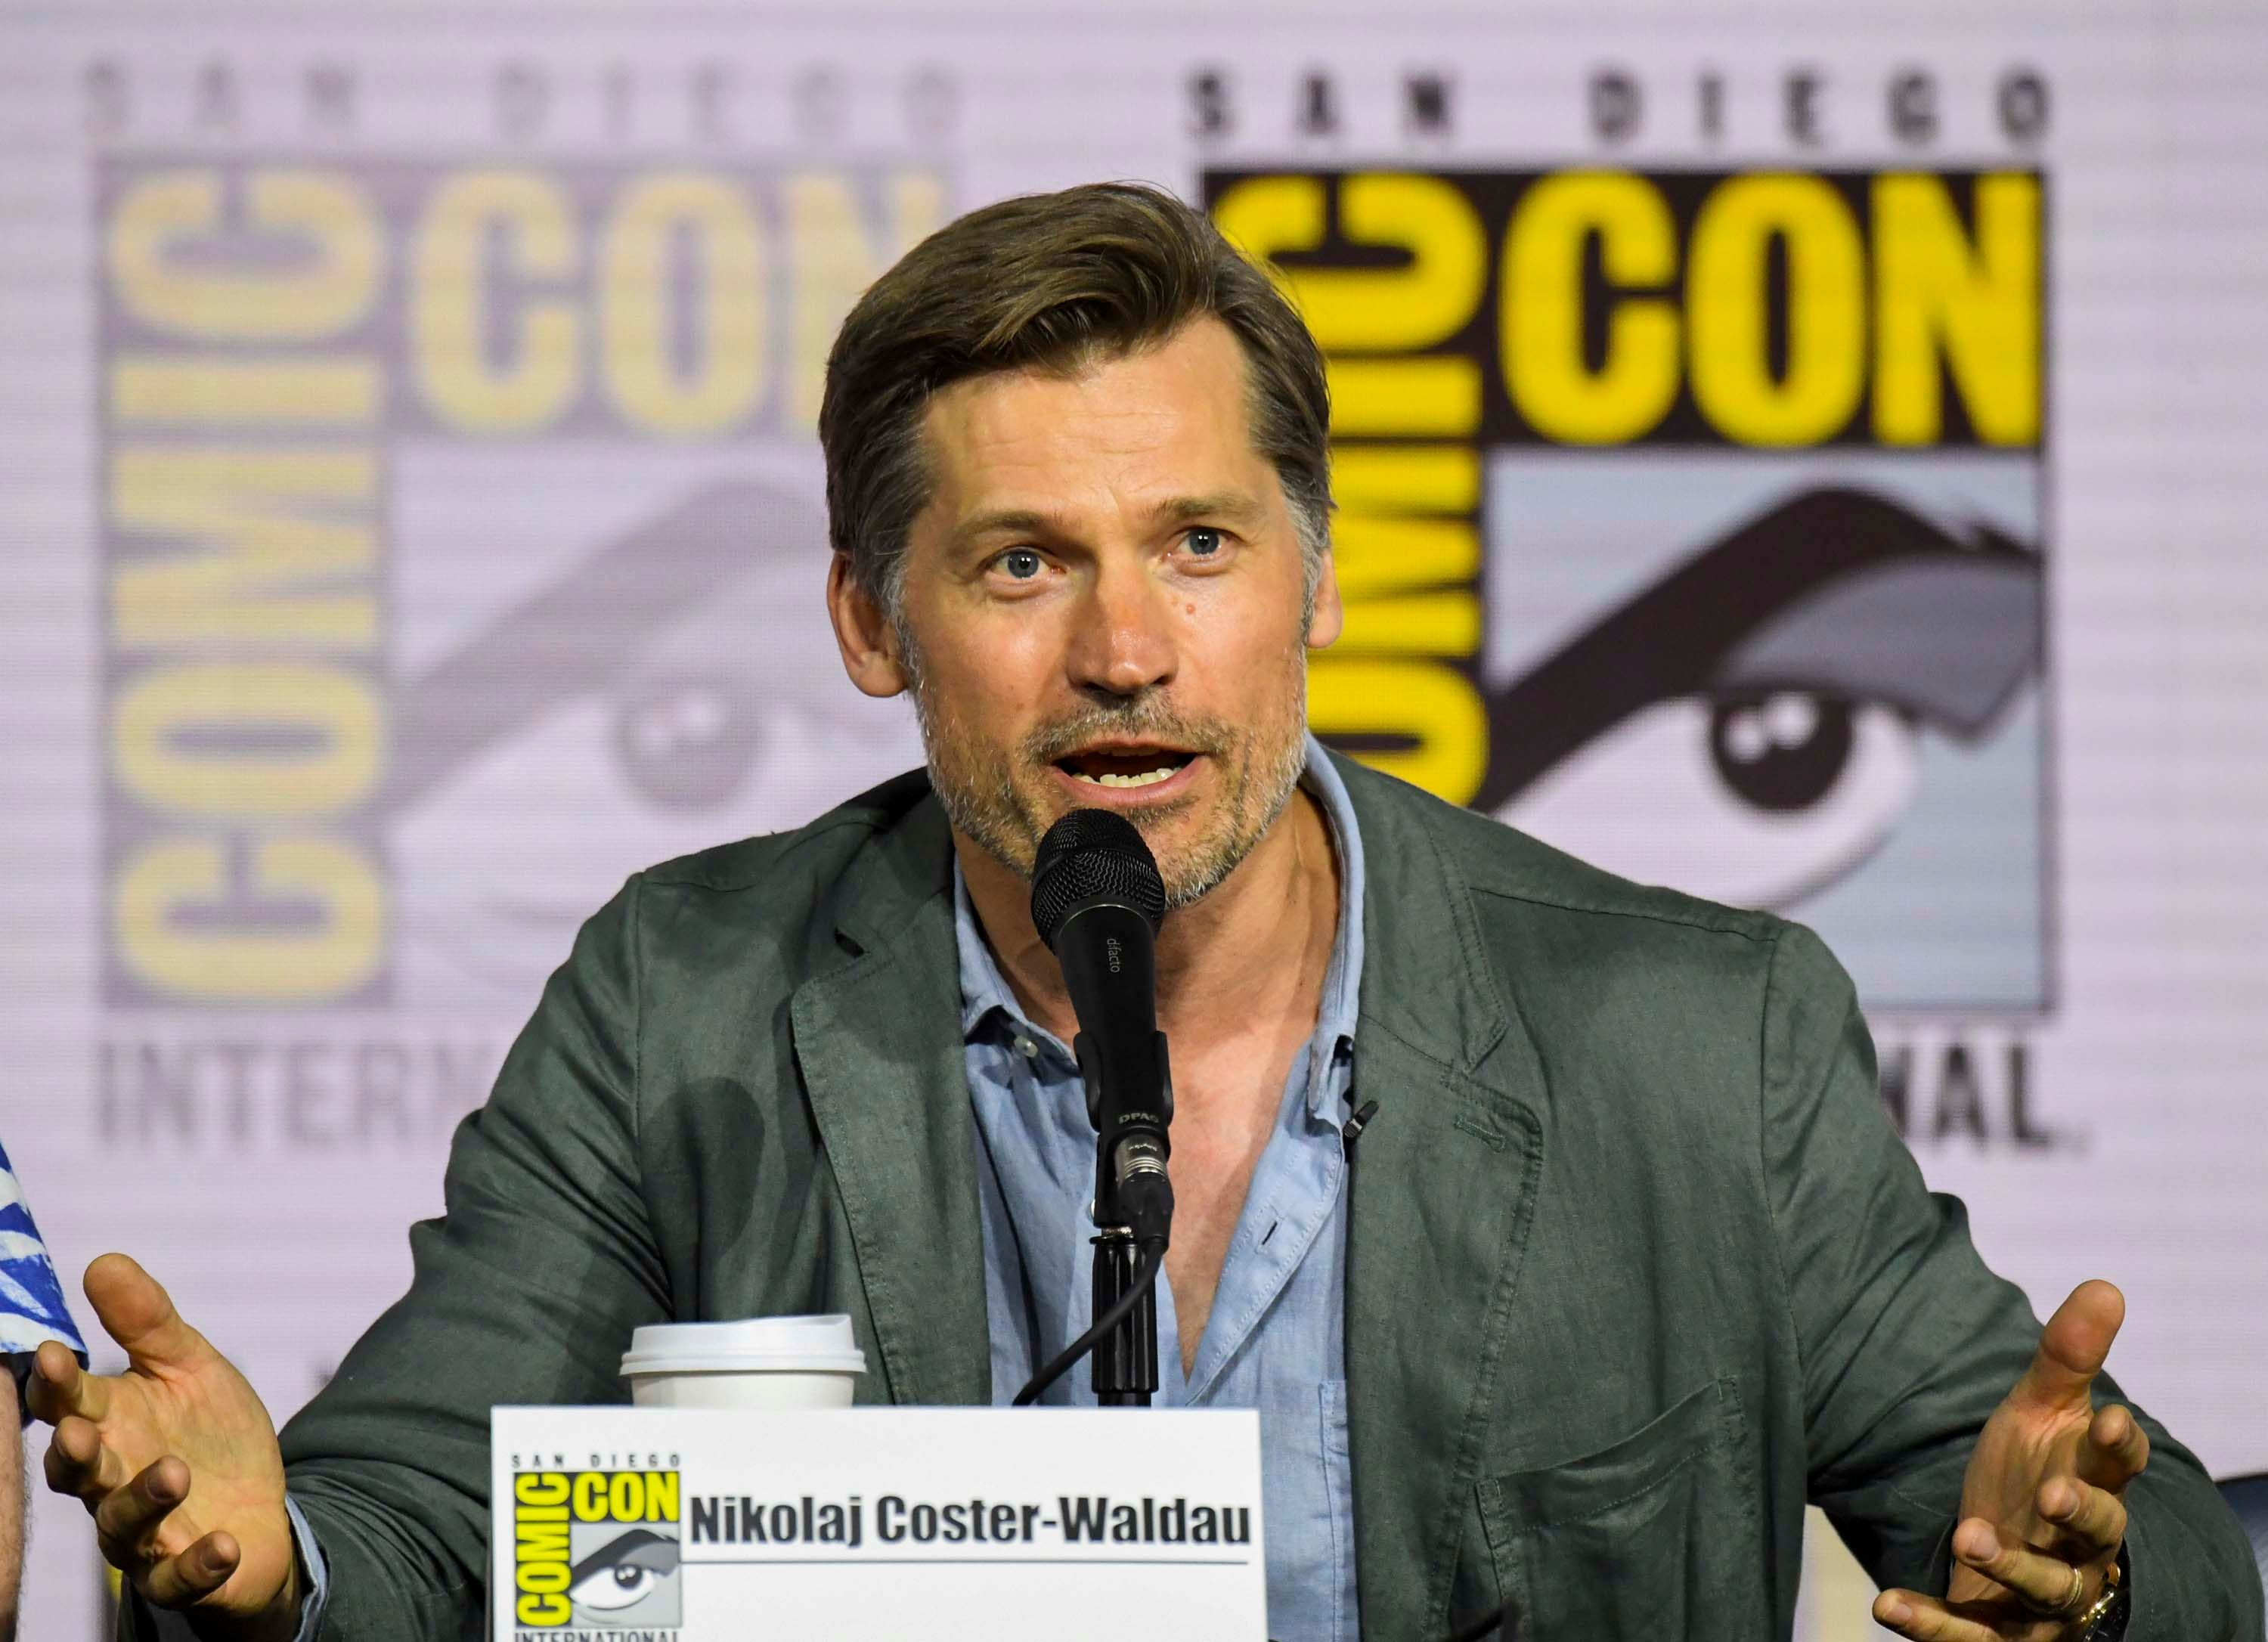 Nikolaj Coster-Waldau Gets Lightly Booed at Comic-Con for Defending Jamie's Fate on Game of Thrones